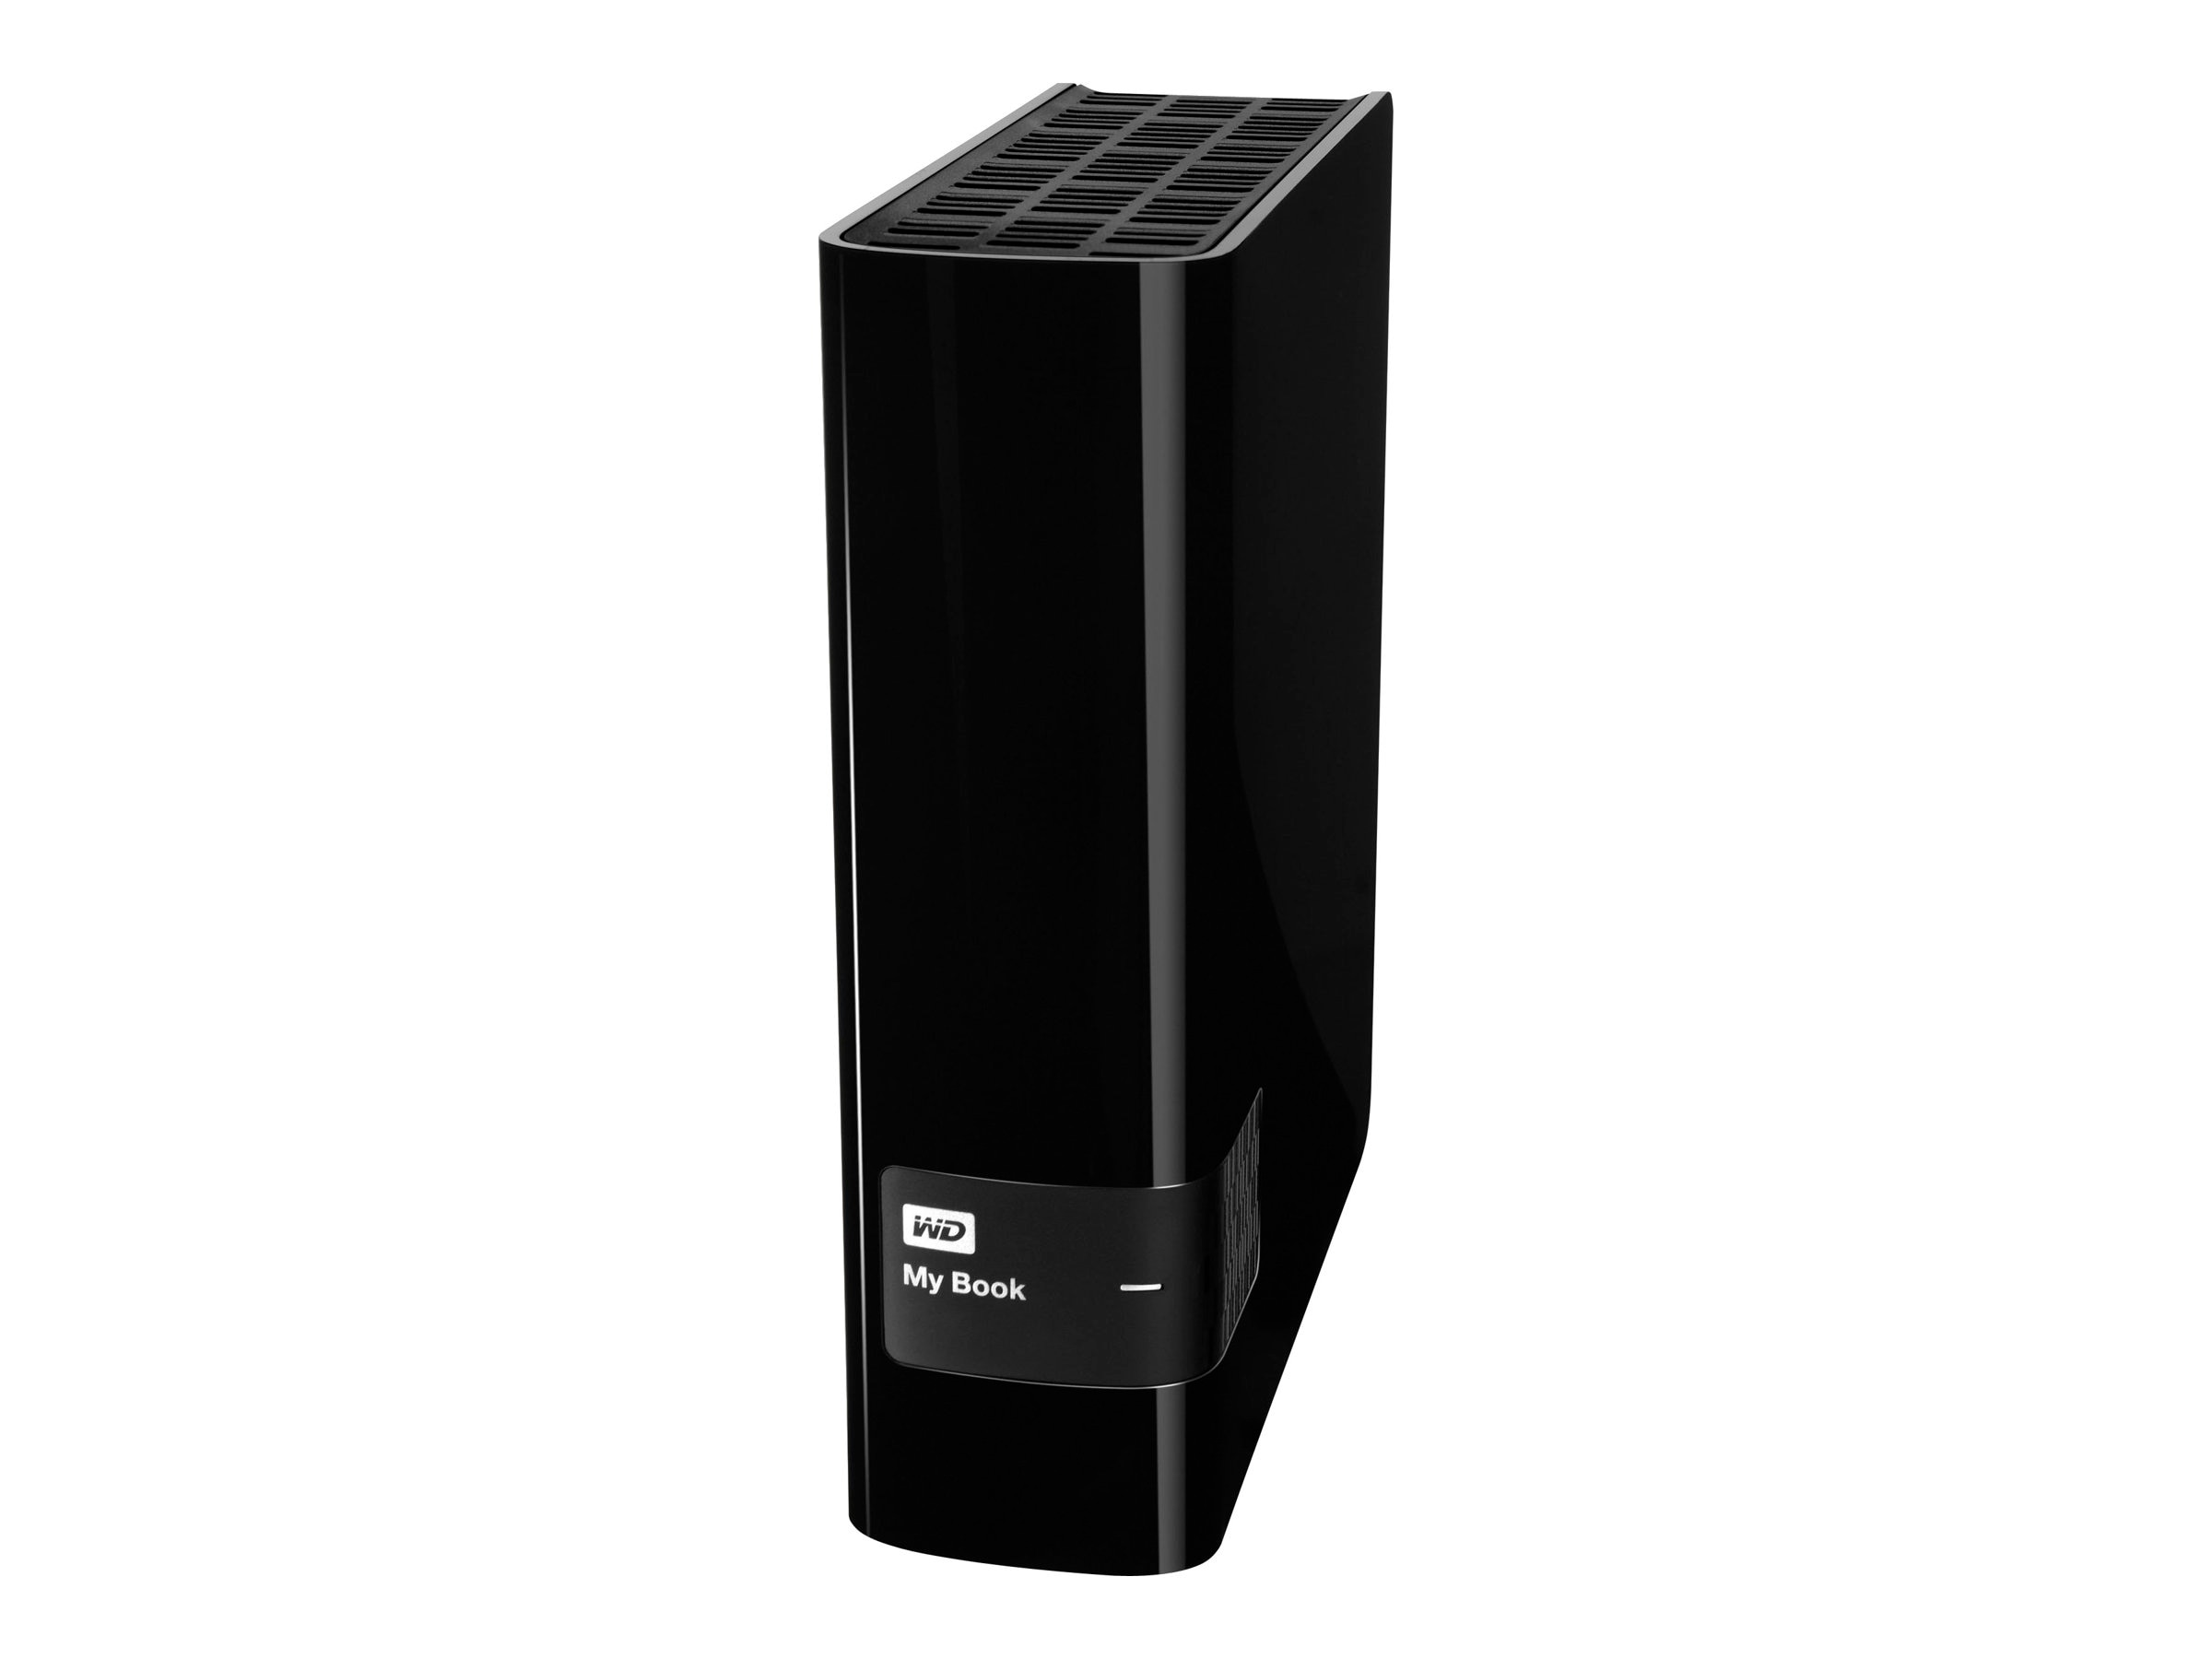 WD 2TB My Book Desktop USB 3.0 External Hard Drive